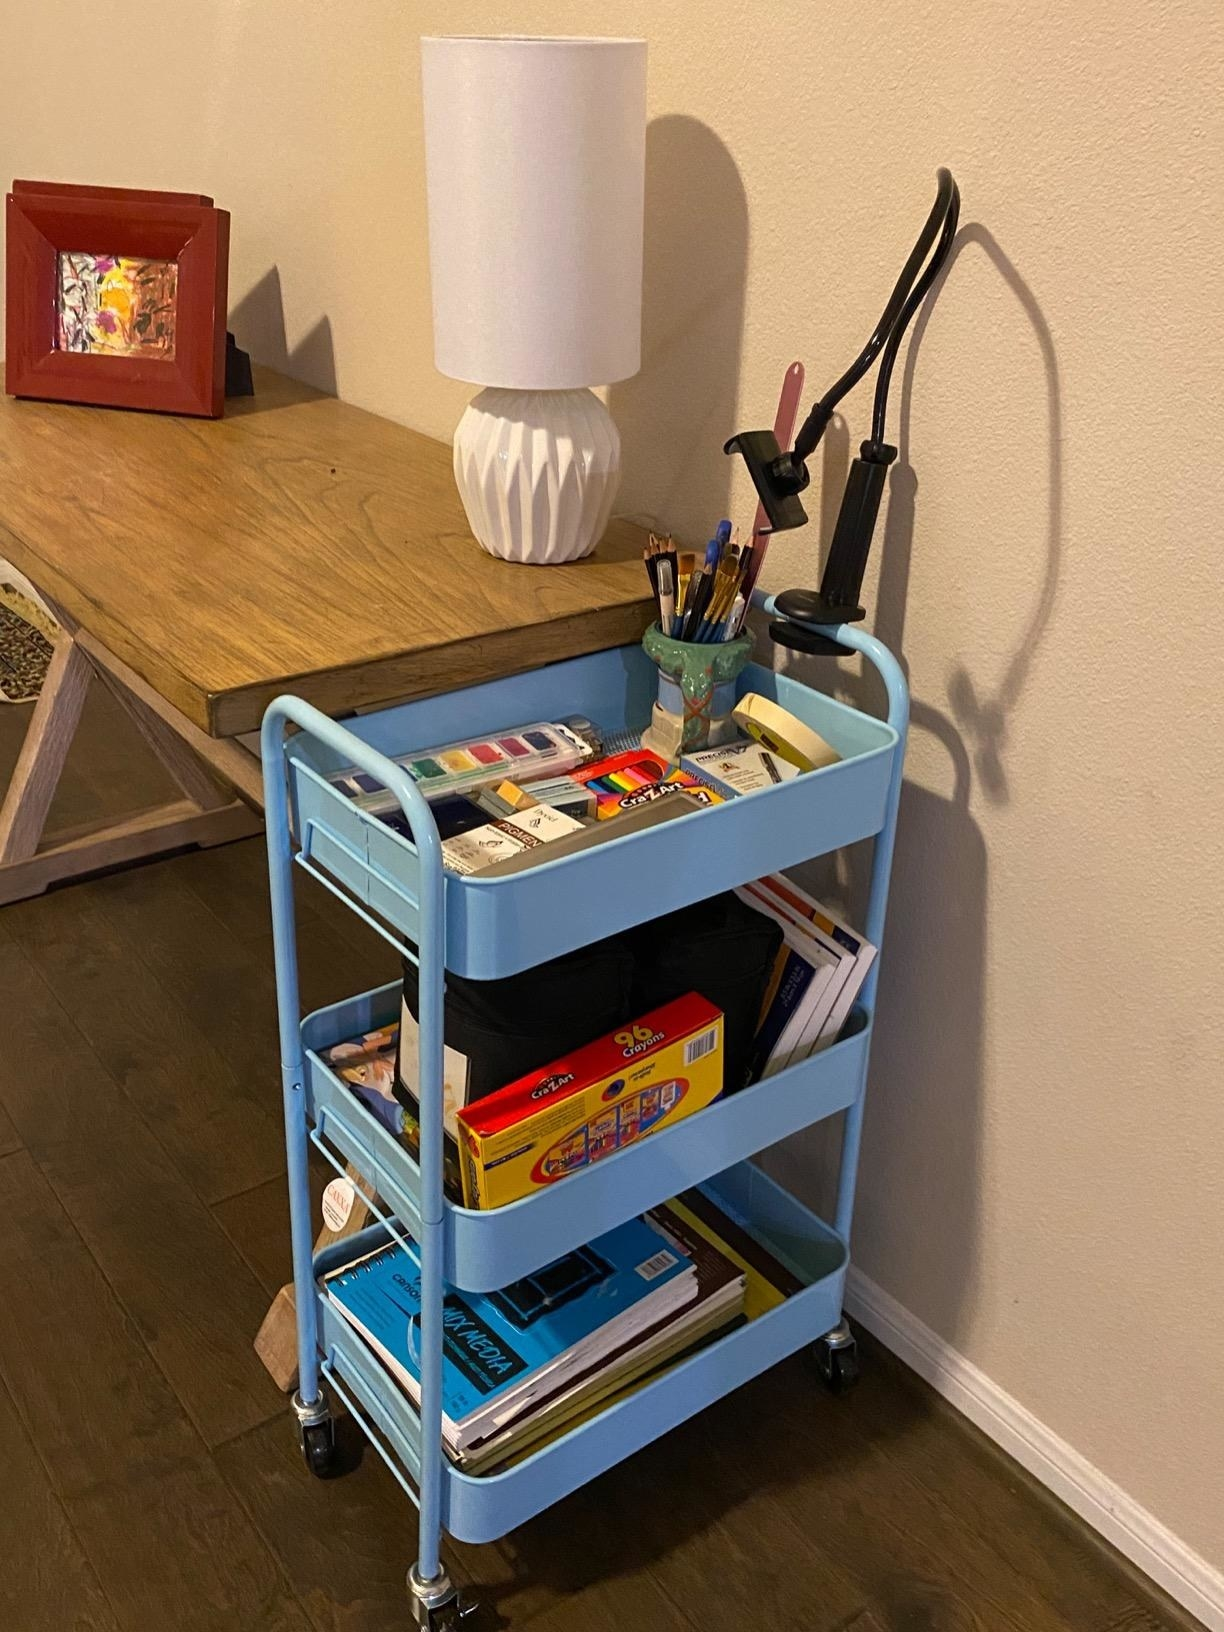 A light blue three shelf metal storage cart on caster wheels